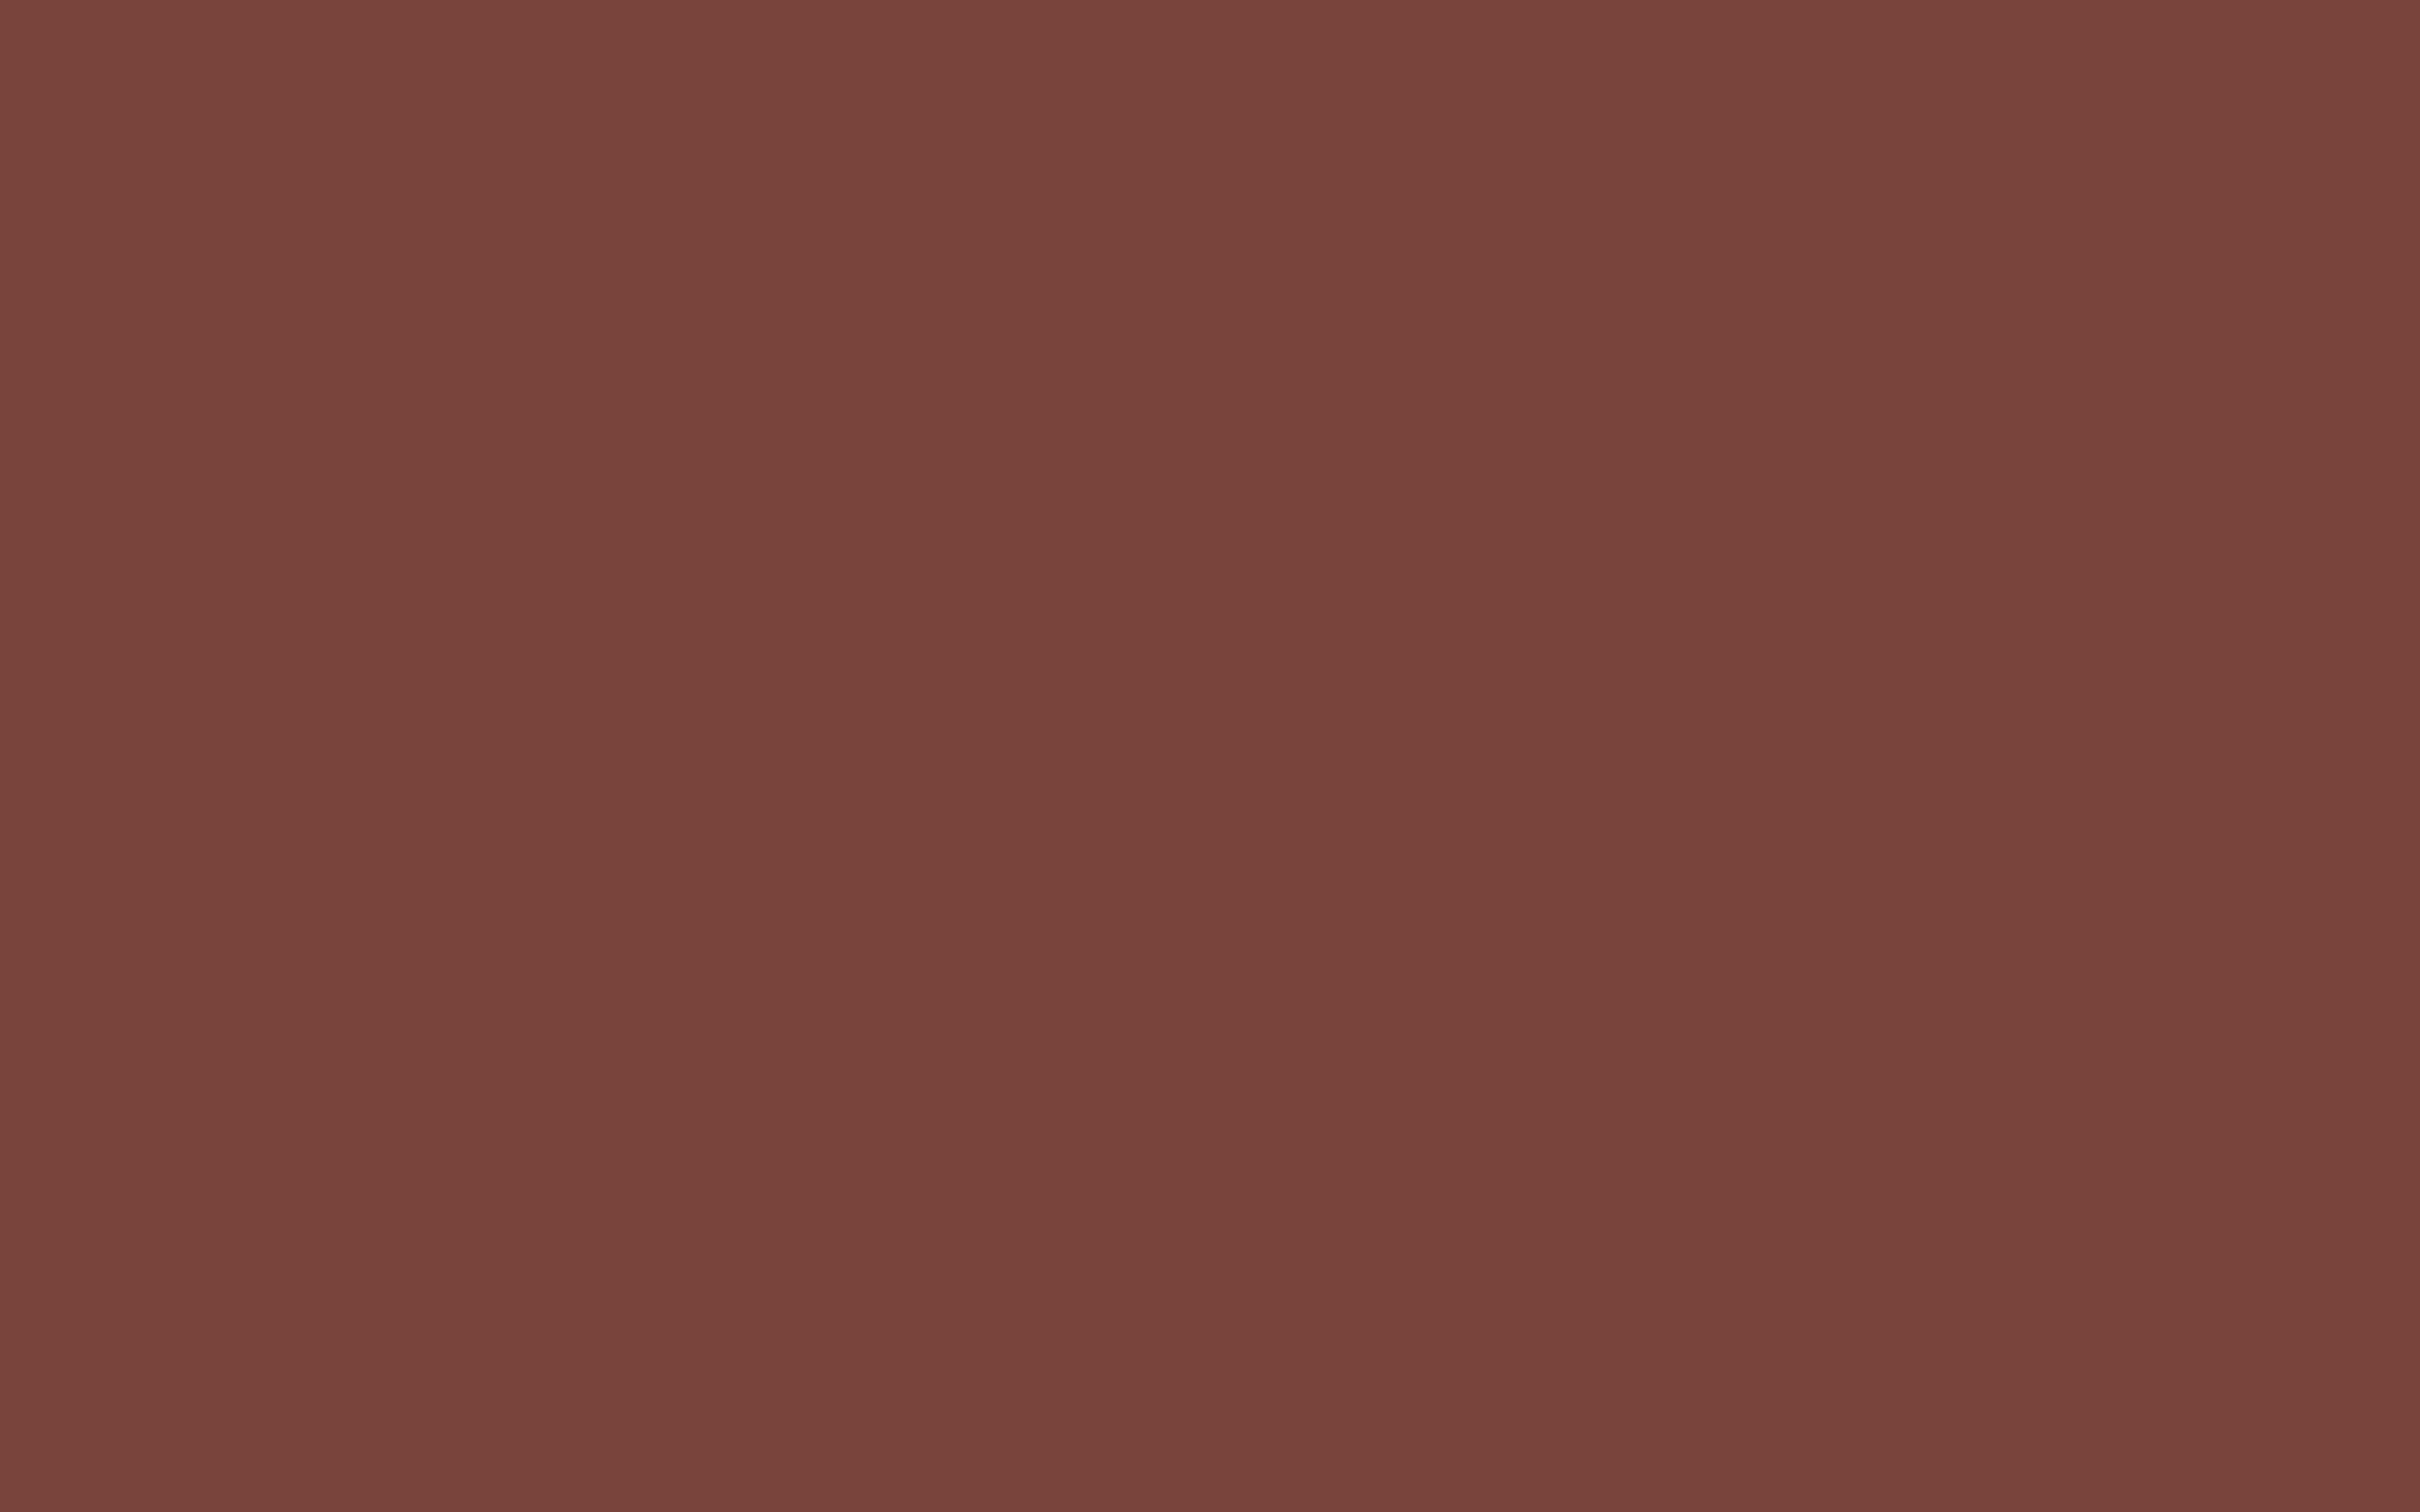 2880x1800 Medium Tuscan Red Solid Color Background